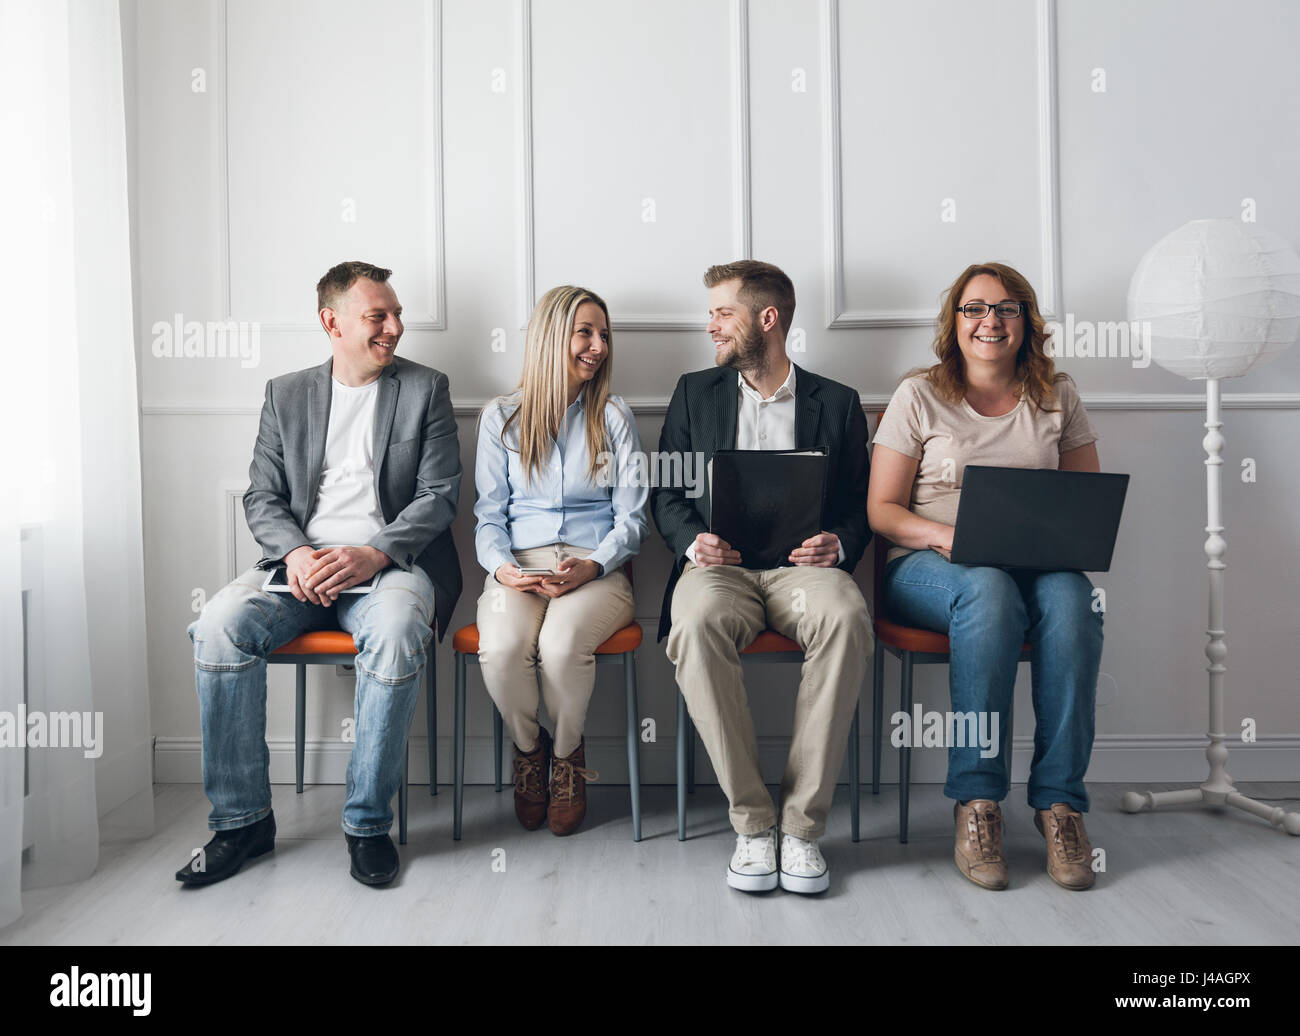 Group of young creative people sitting on chairs in waiting room - Stock Image